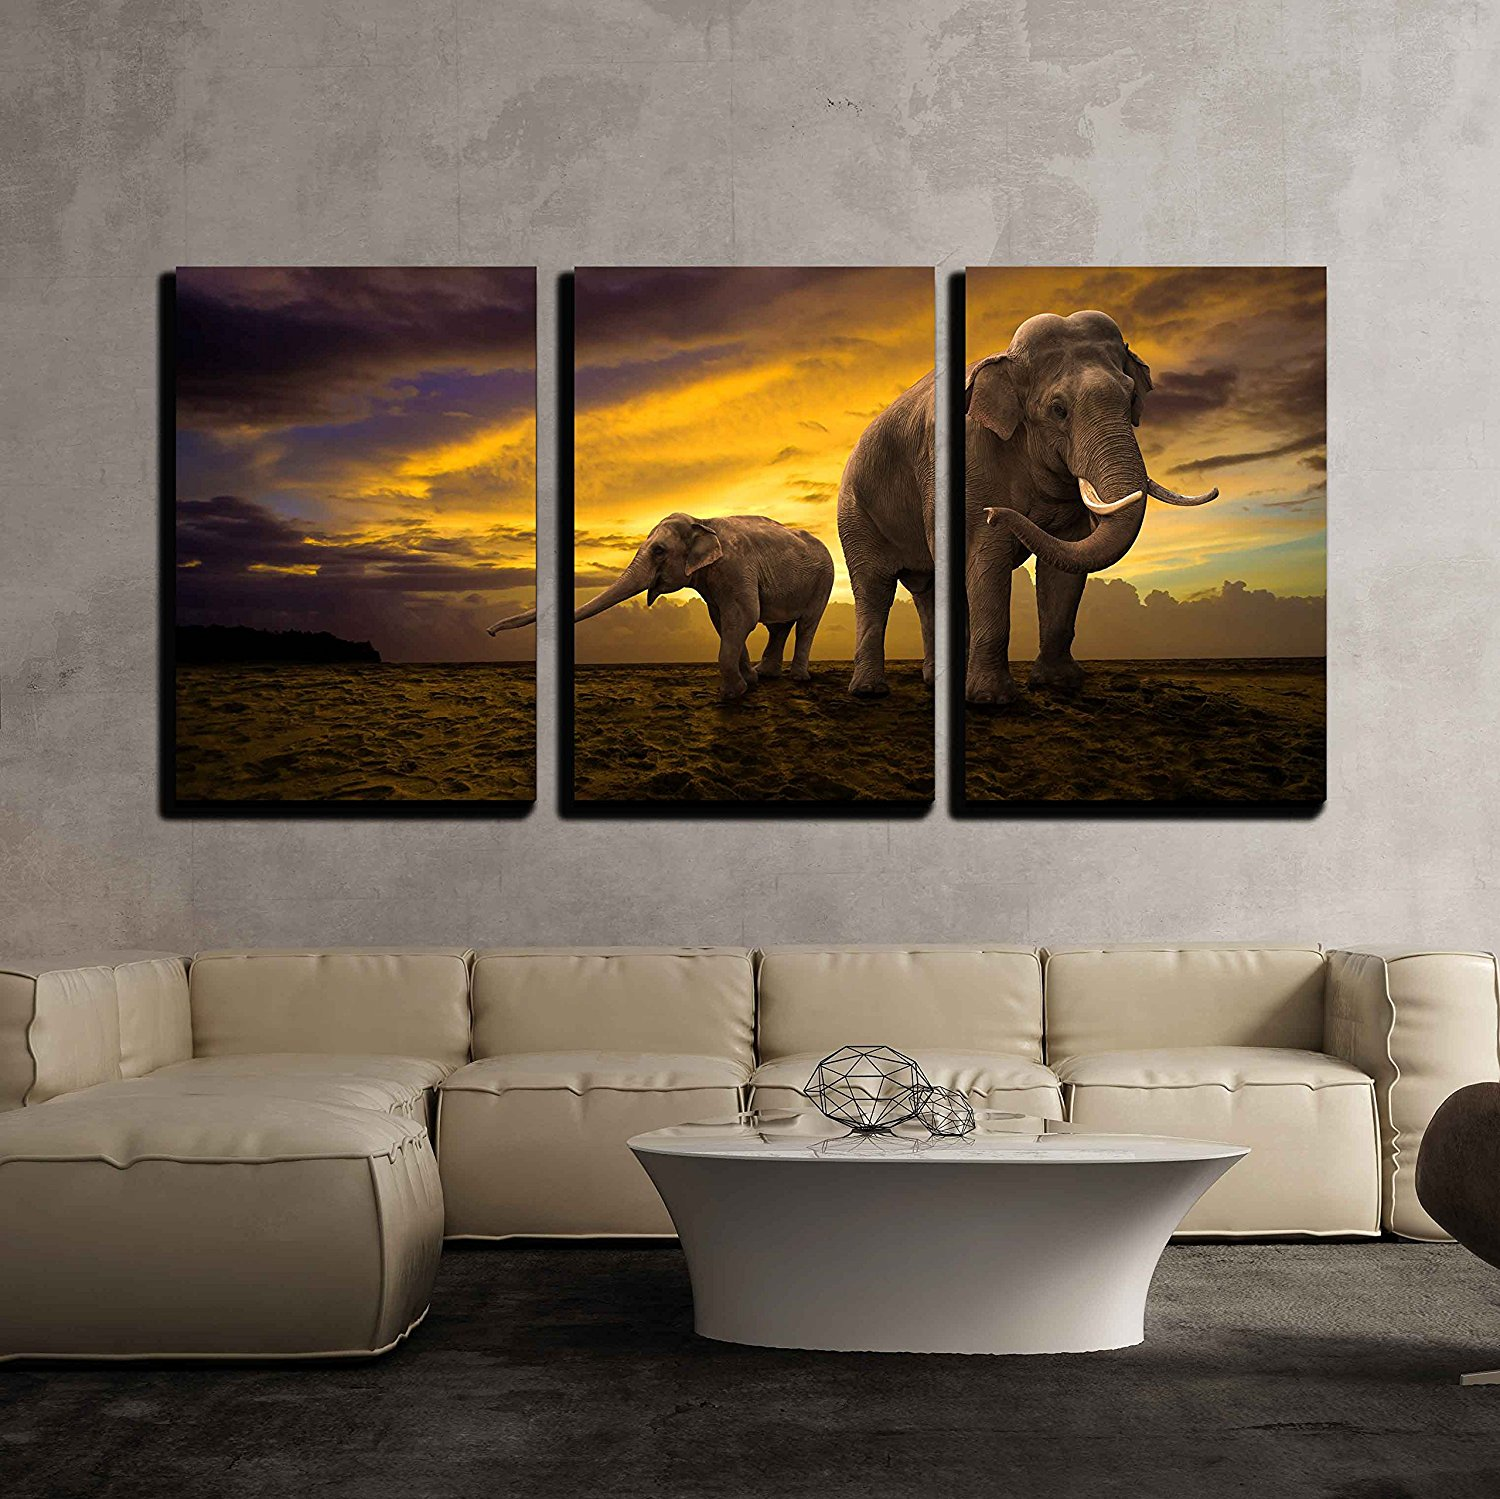 Elephants Family on Sunset Canvas Wall Art Modern Home Decor Drop shipping